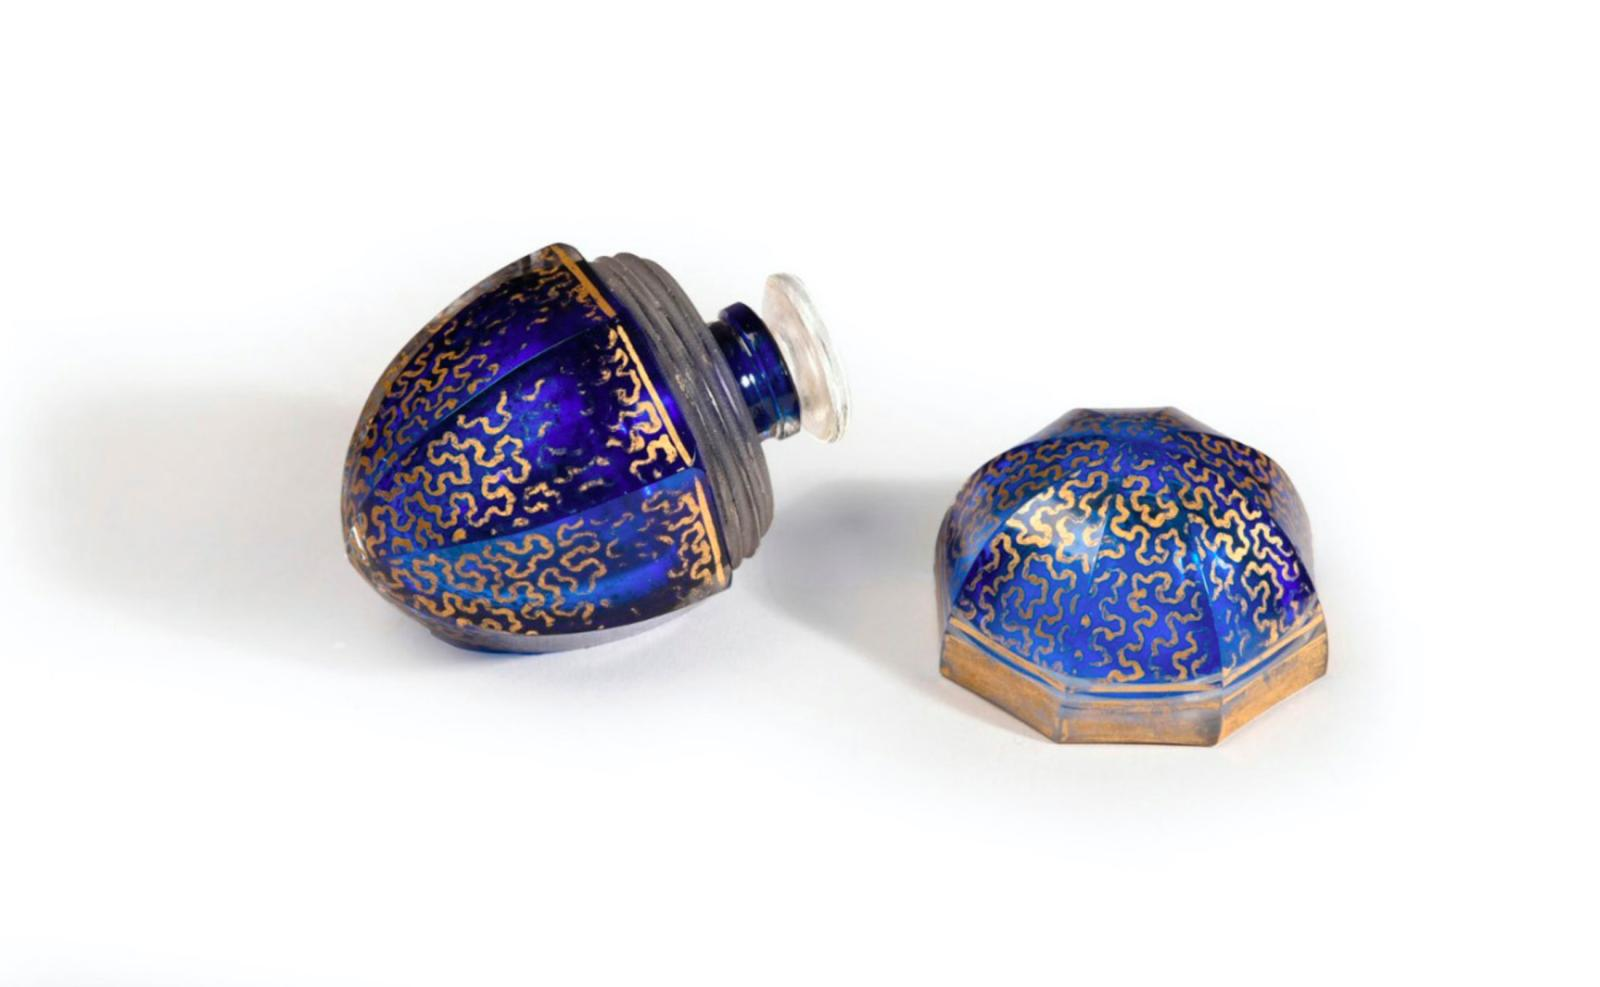 Coty, 1920s, perfume bottle made of colourless pressed moulded glass, with midnight blue enamelling, gold decoration and a glass screw cap